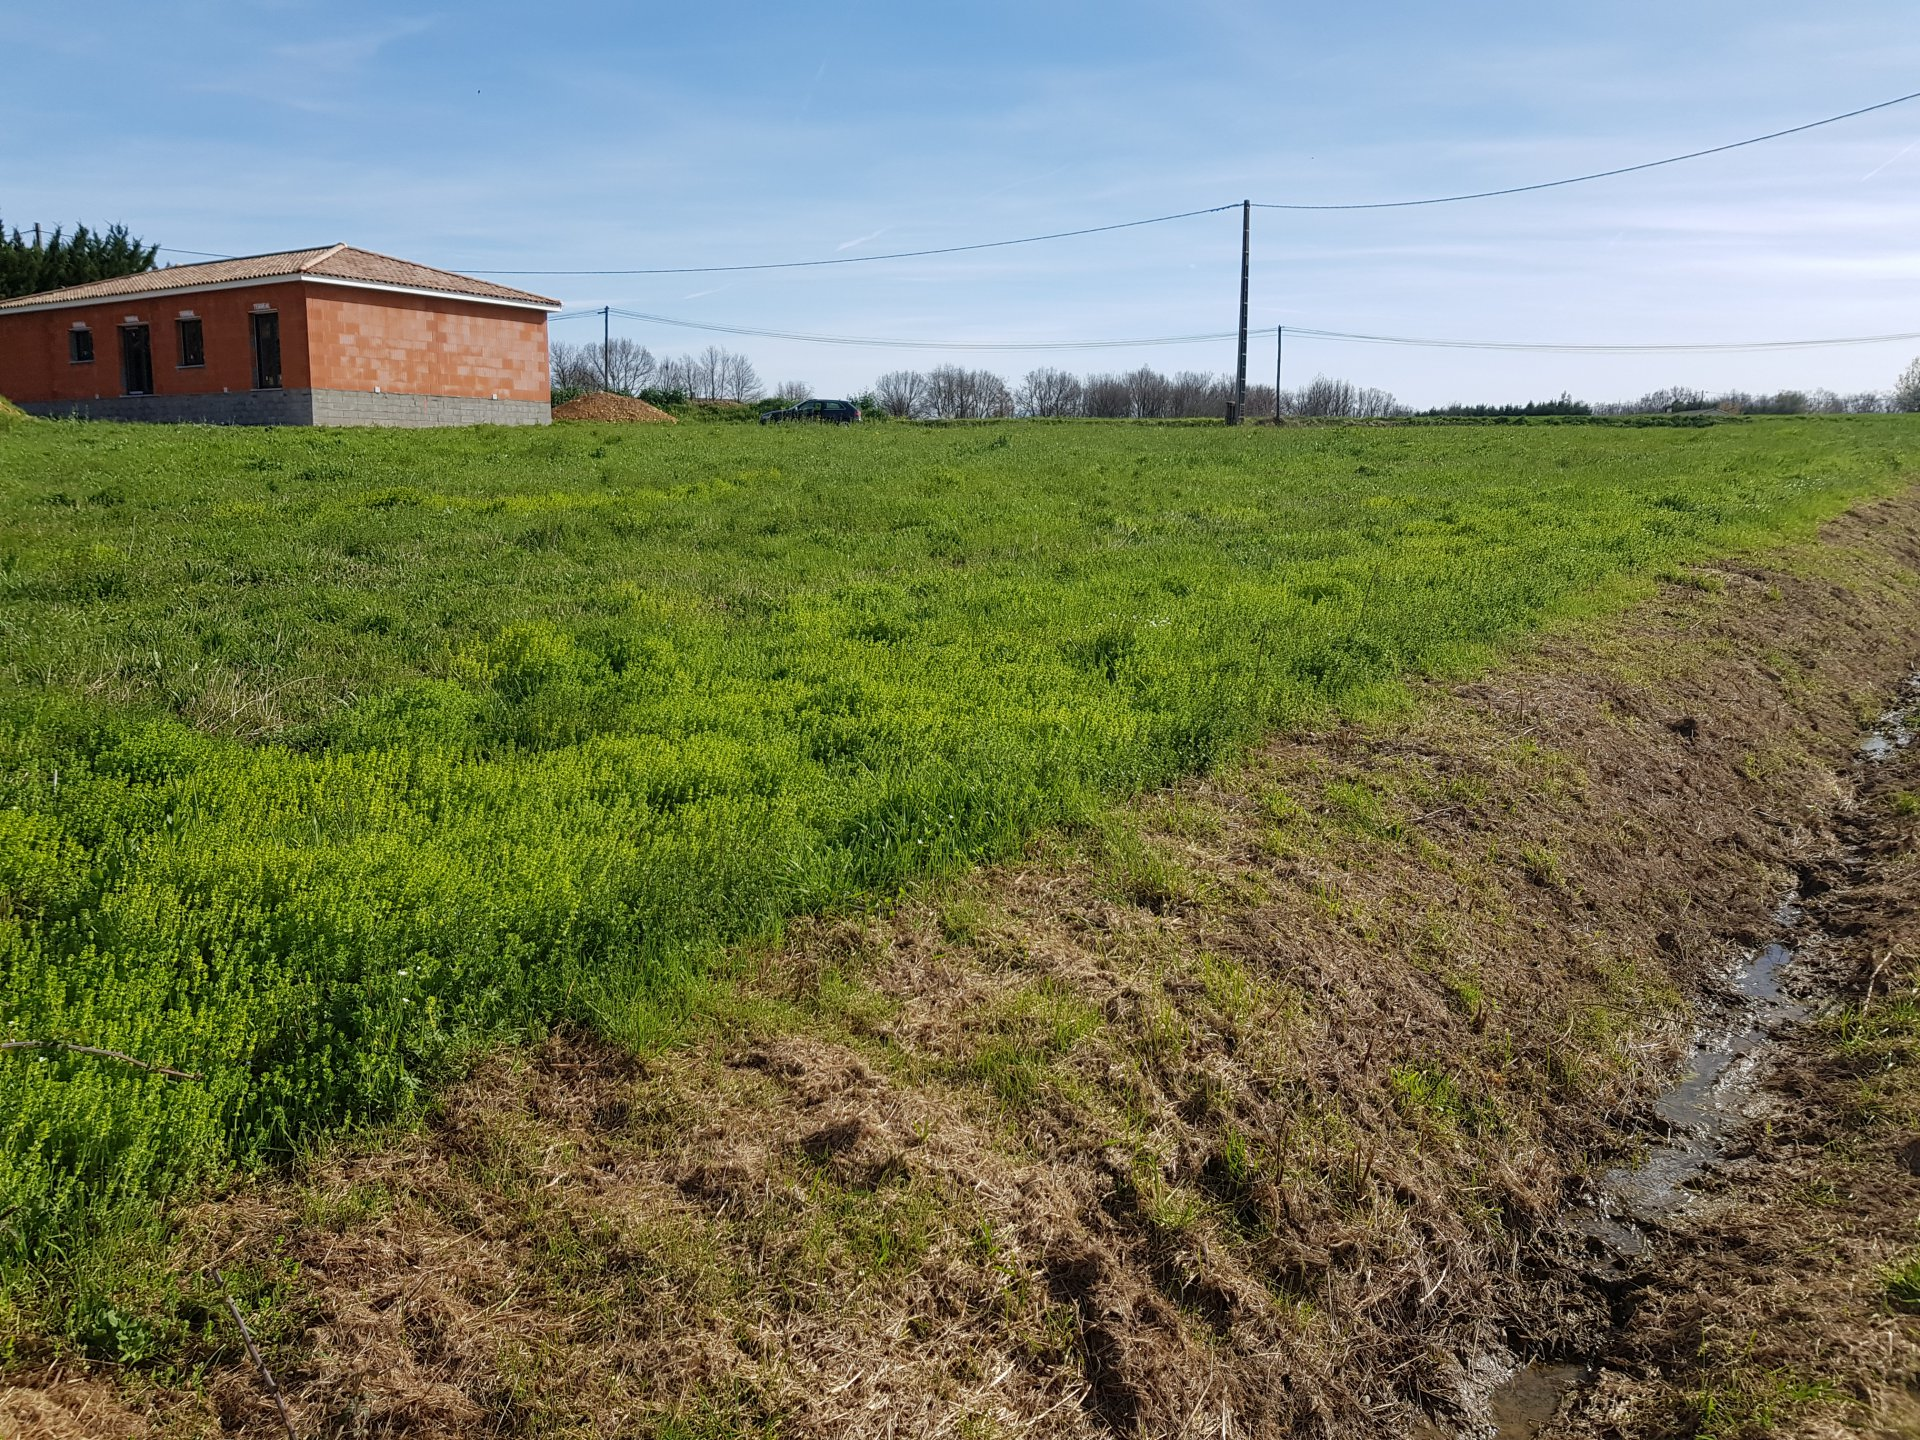 In Mondavezan, building plot of 2002 m² with planning permission